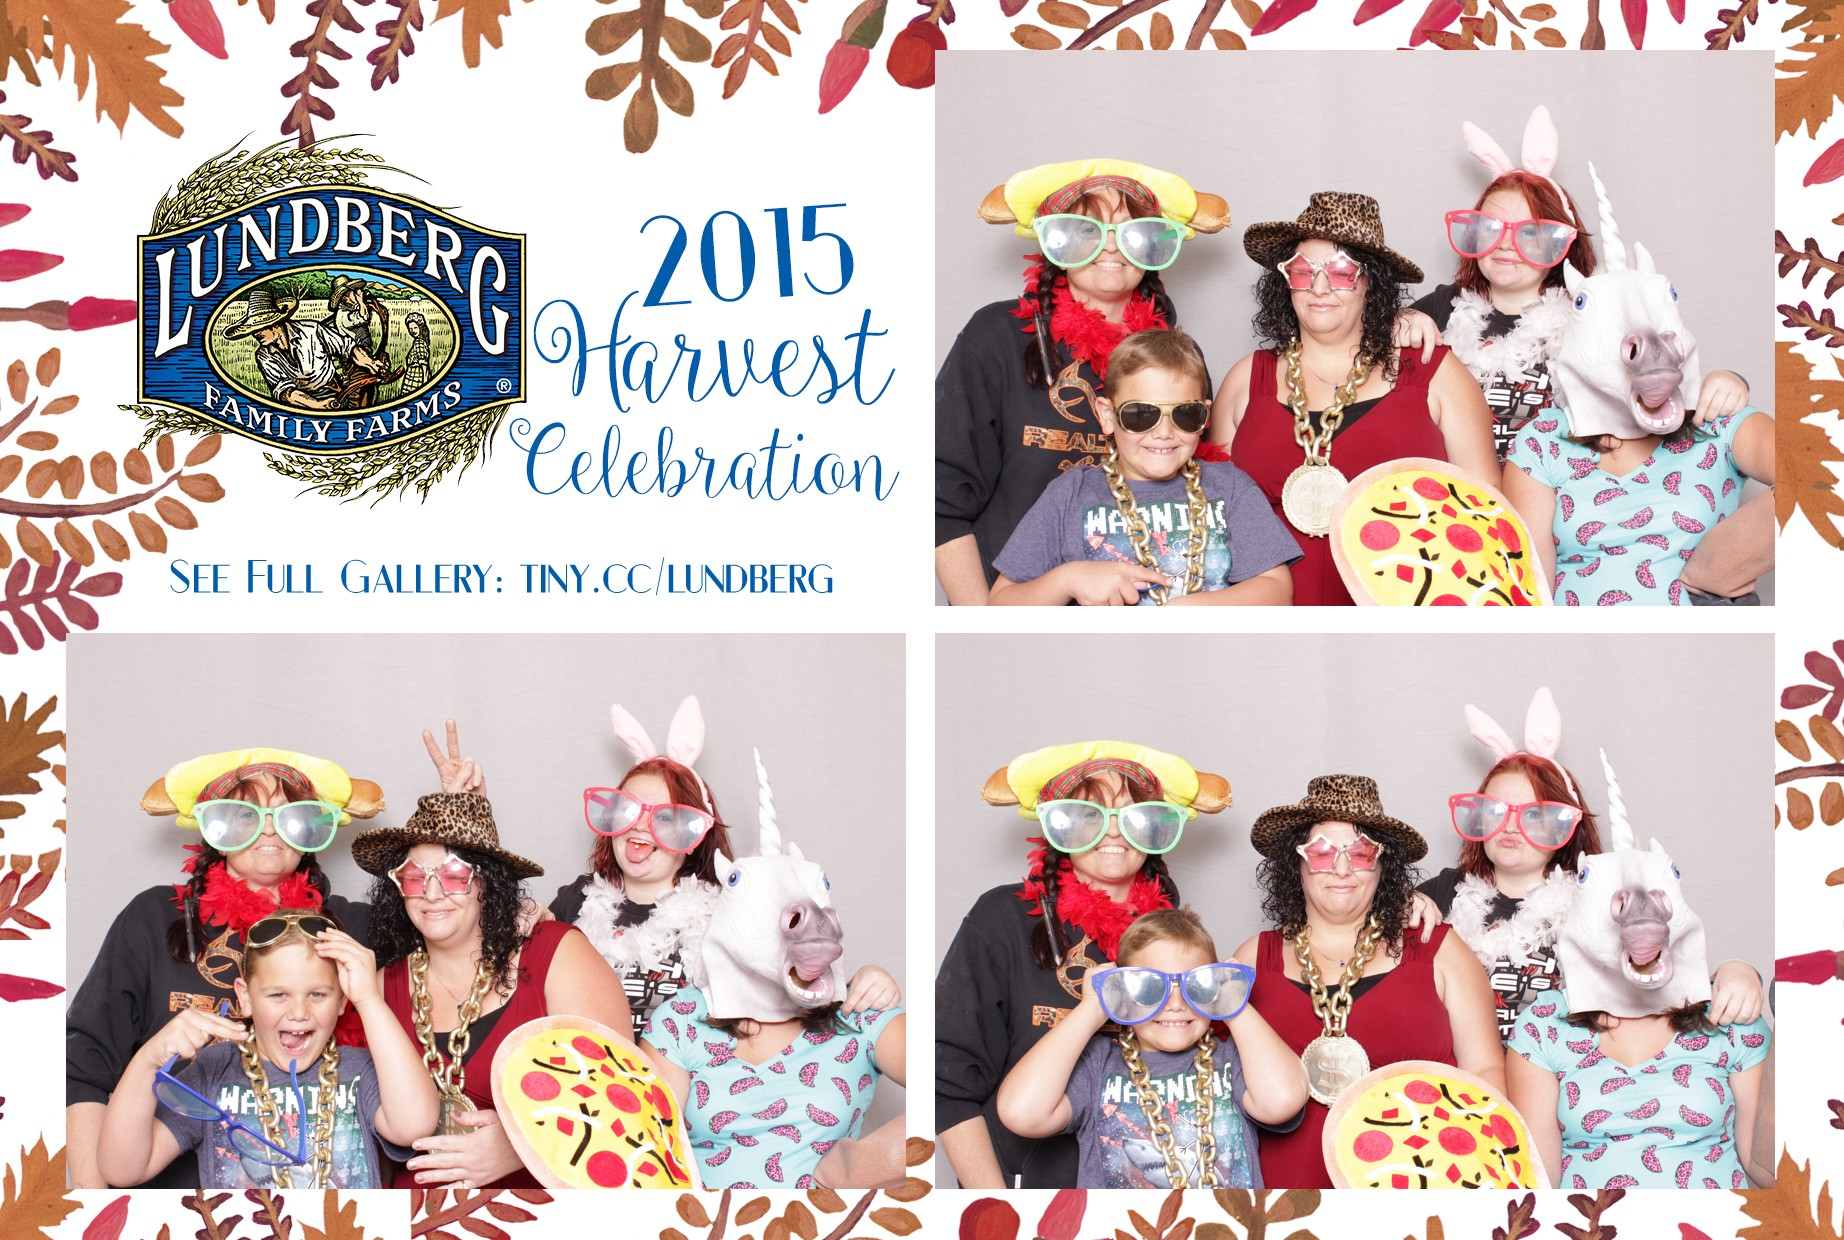 chico-photo-booth-151107_013054.jpg